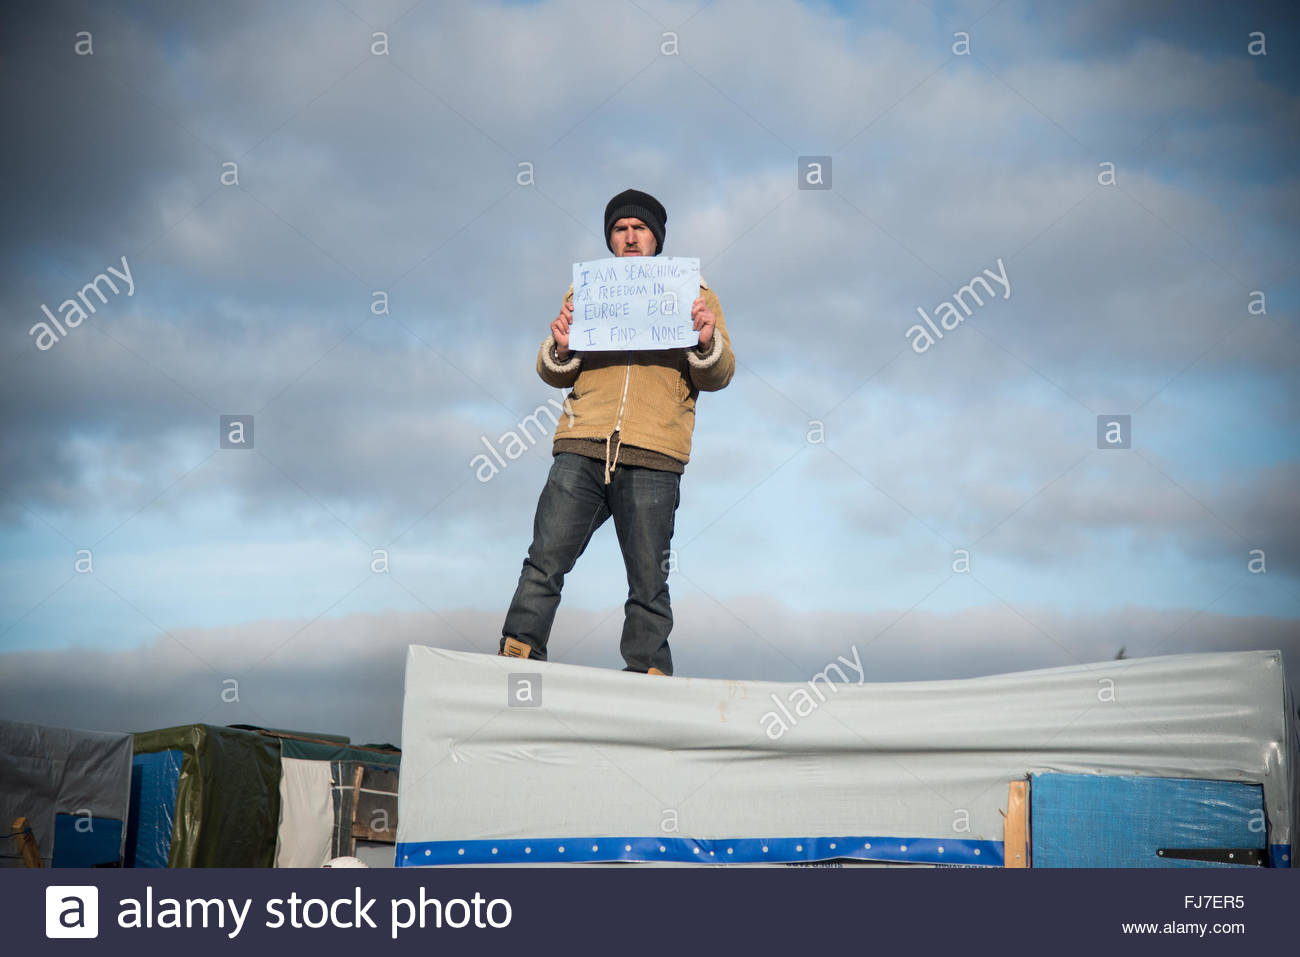 Calais, France. February 29th, 2016. A just-evicted refugee stands atop a makeshift campsite as authorities dismantle - Stock Image